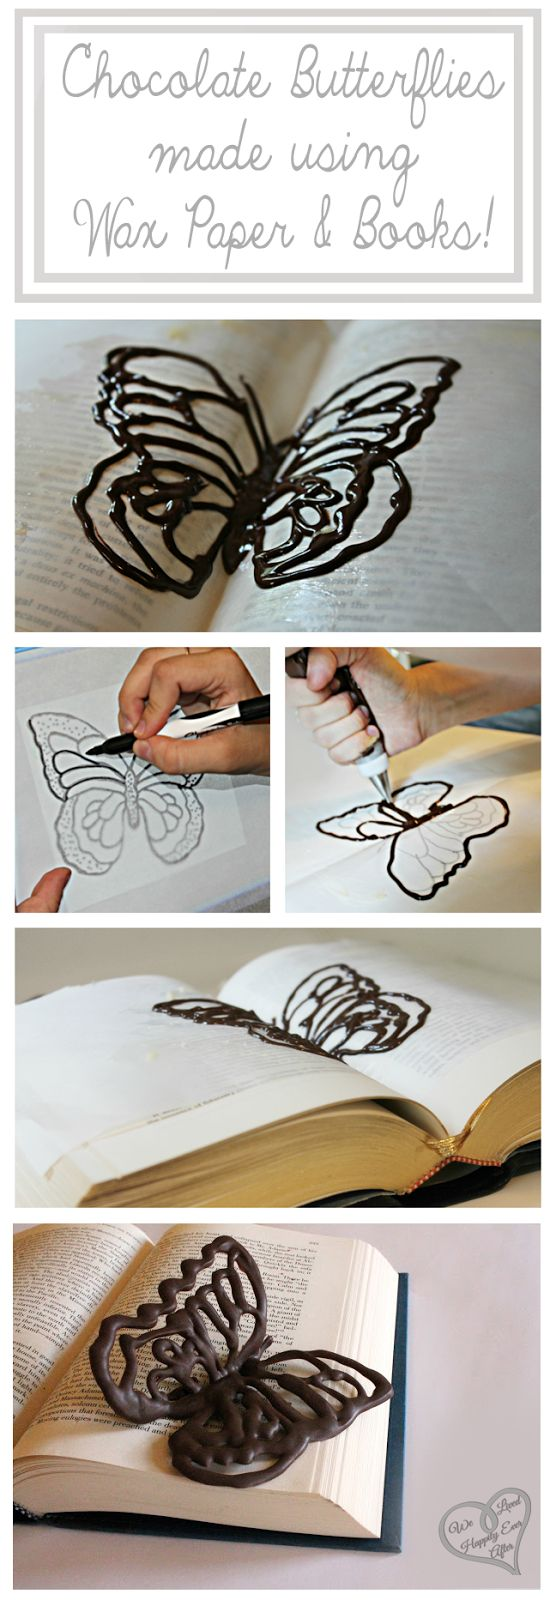 Why didn't I think of this??? Chocolate Butterflies Using Wax Paper and Books! The curve of the open book gives the butterfly a realistic wingspan! So cool!